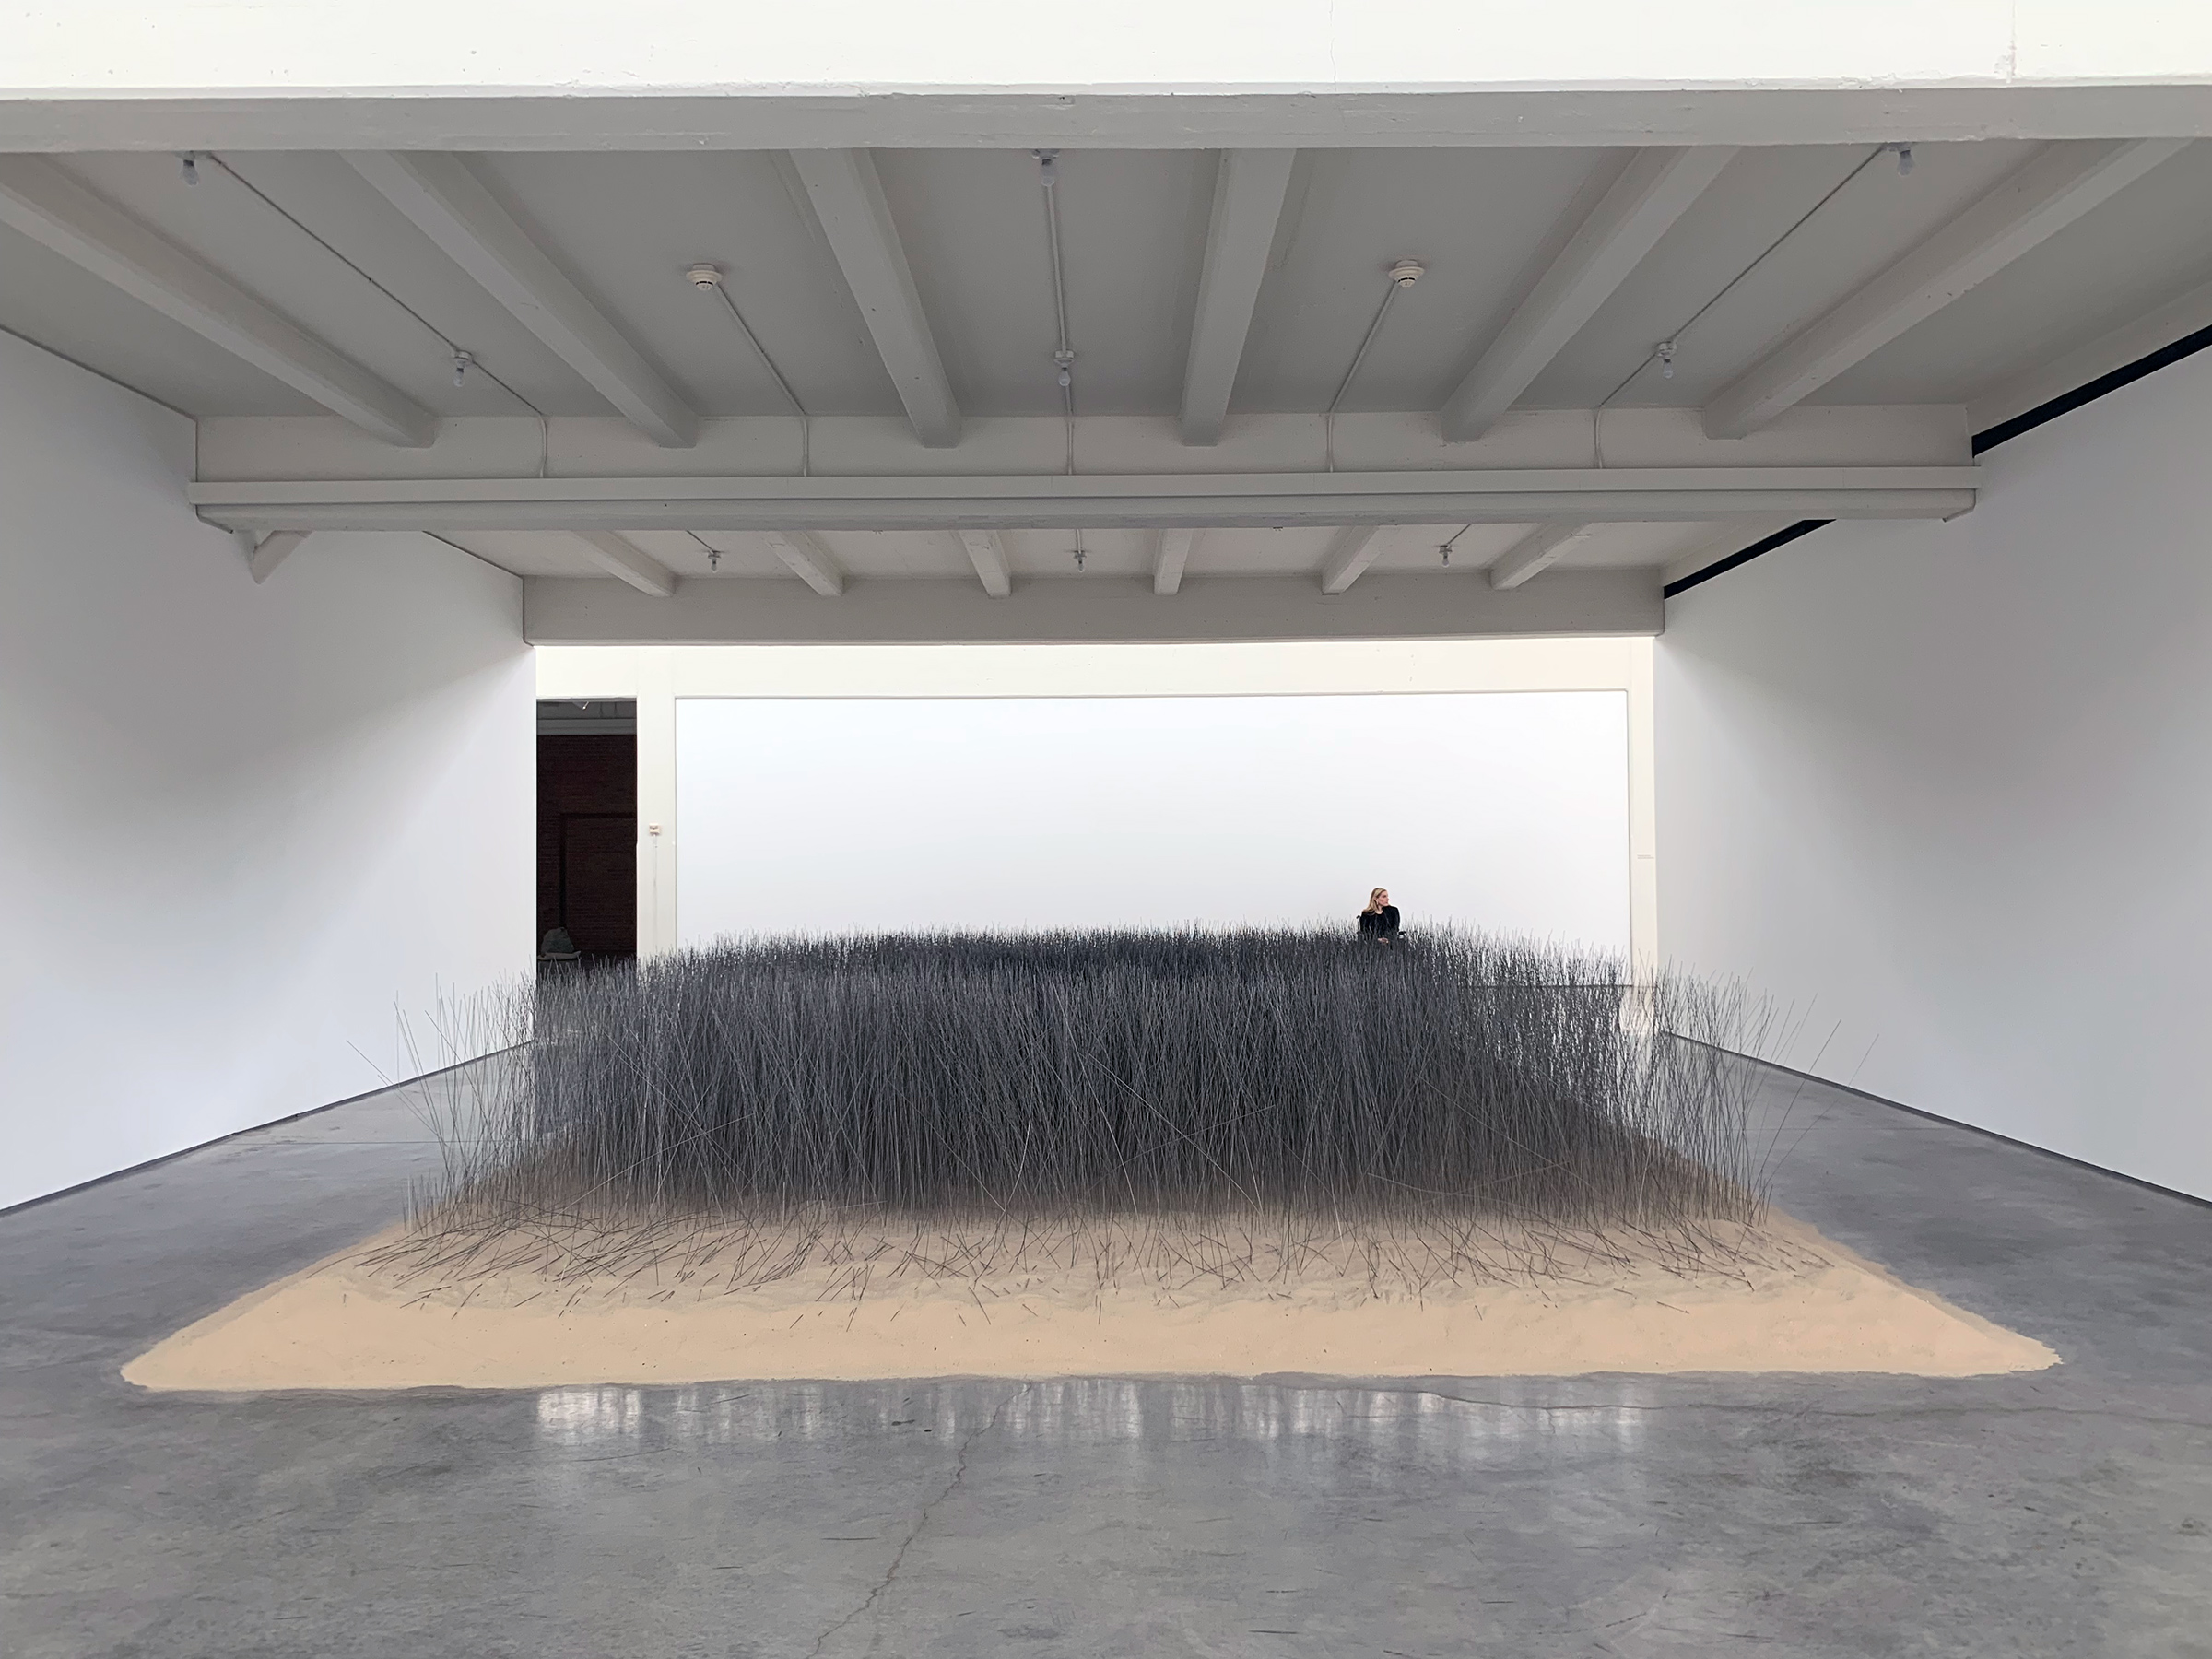 Lee Ufan Installs 20,000 Steel Rods in Sand at Dia:Beacon